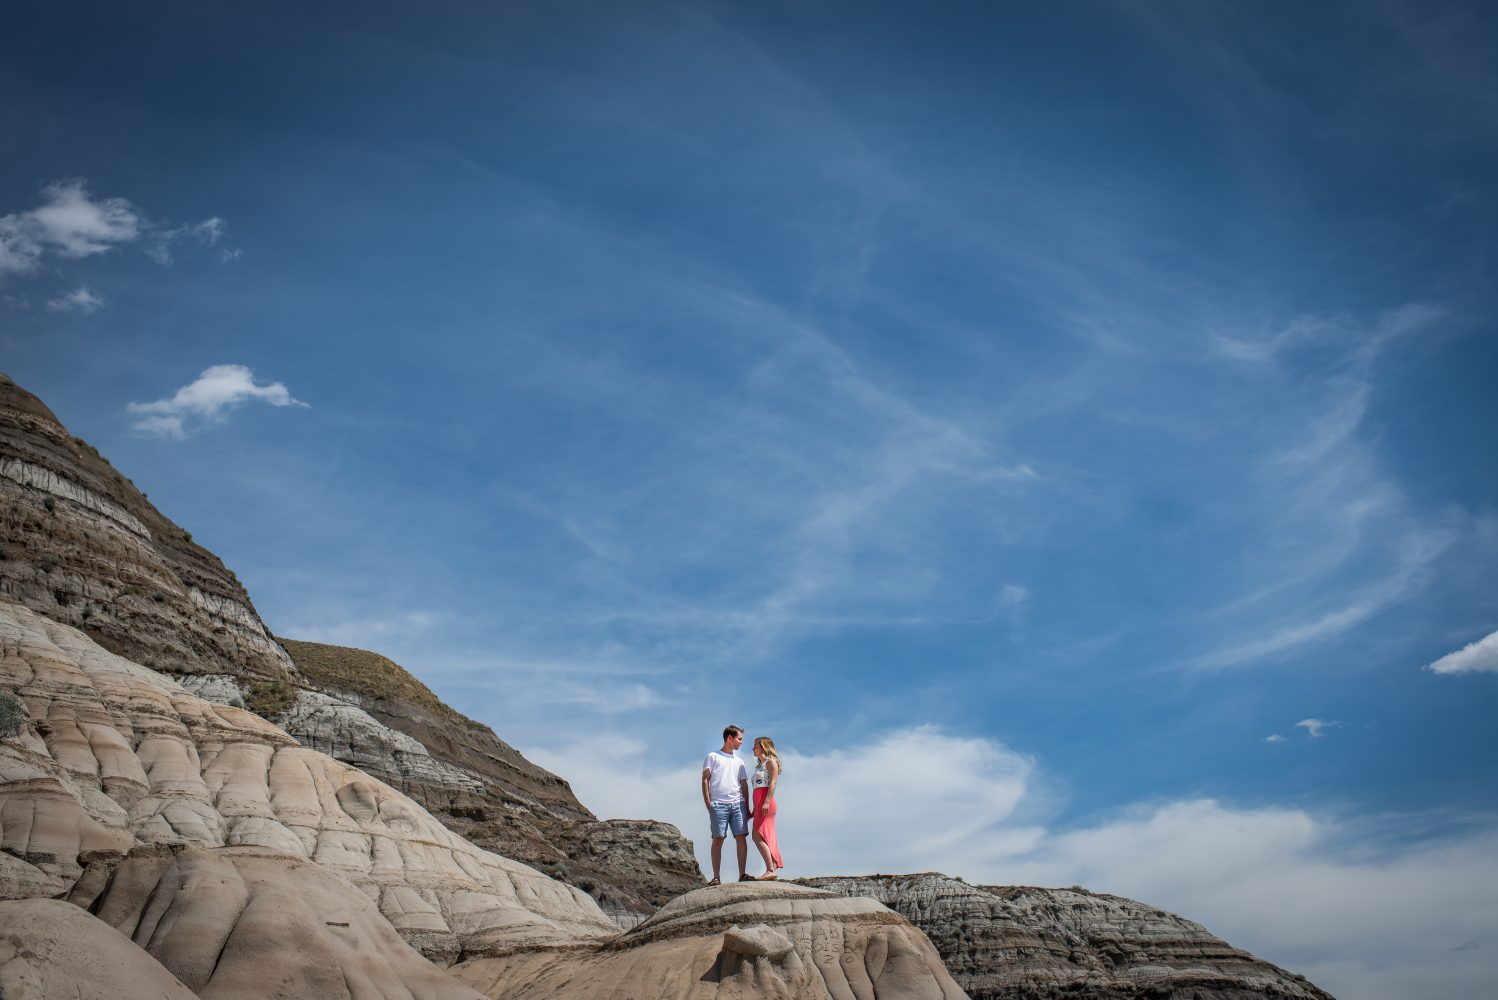 Stunning image from the Badlands in Central Alberta during an amazing engagement shoot |3Haus Photographics